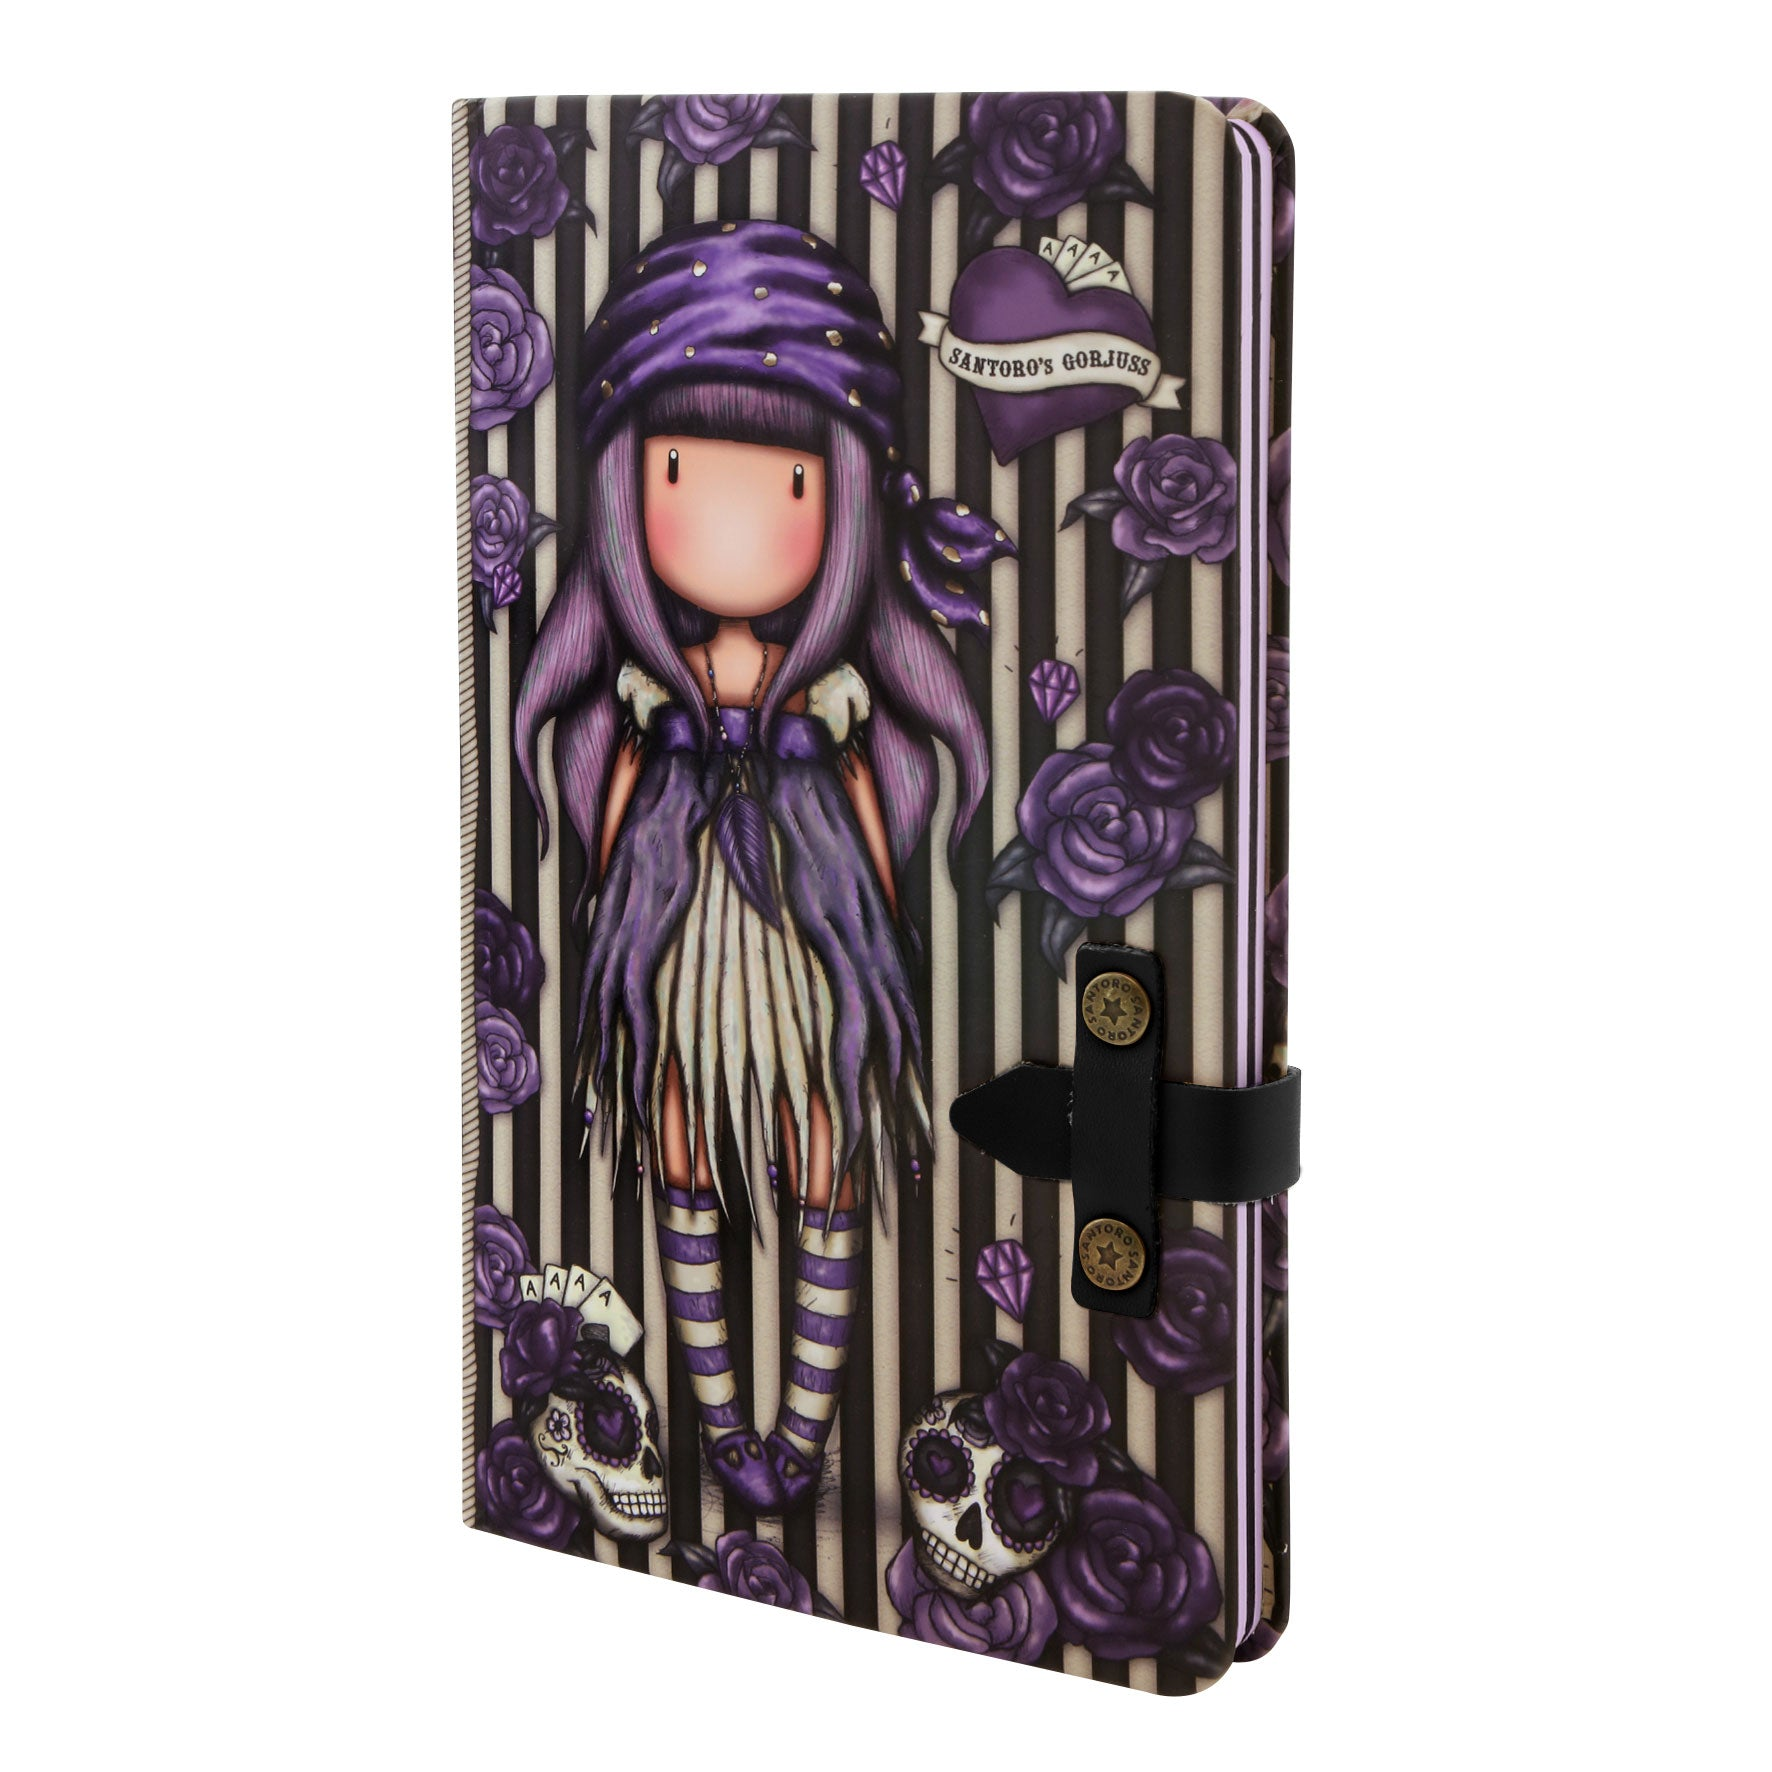 *NEW* from Gorjuss by Santoro London - Sea Nixie Large Journal w/ Strap